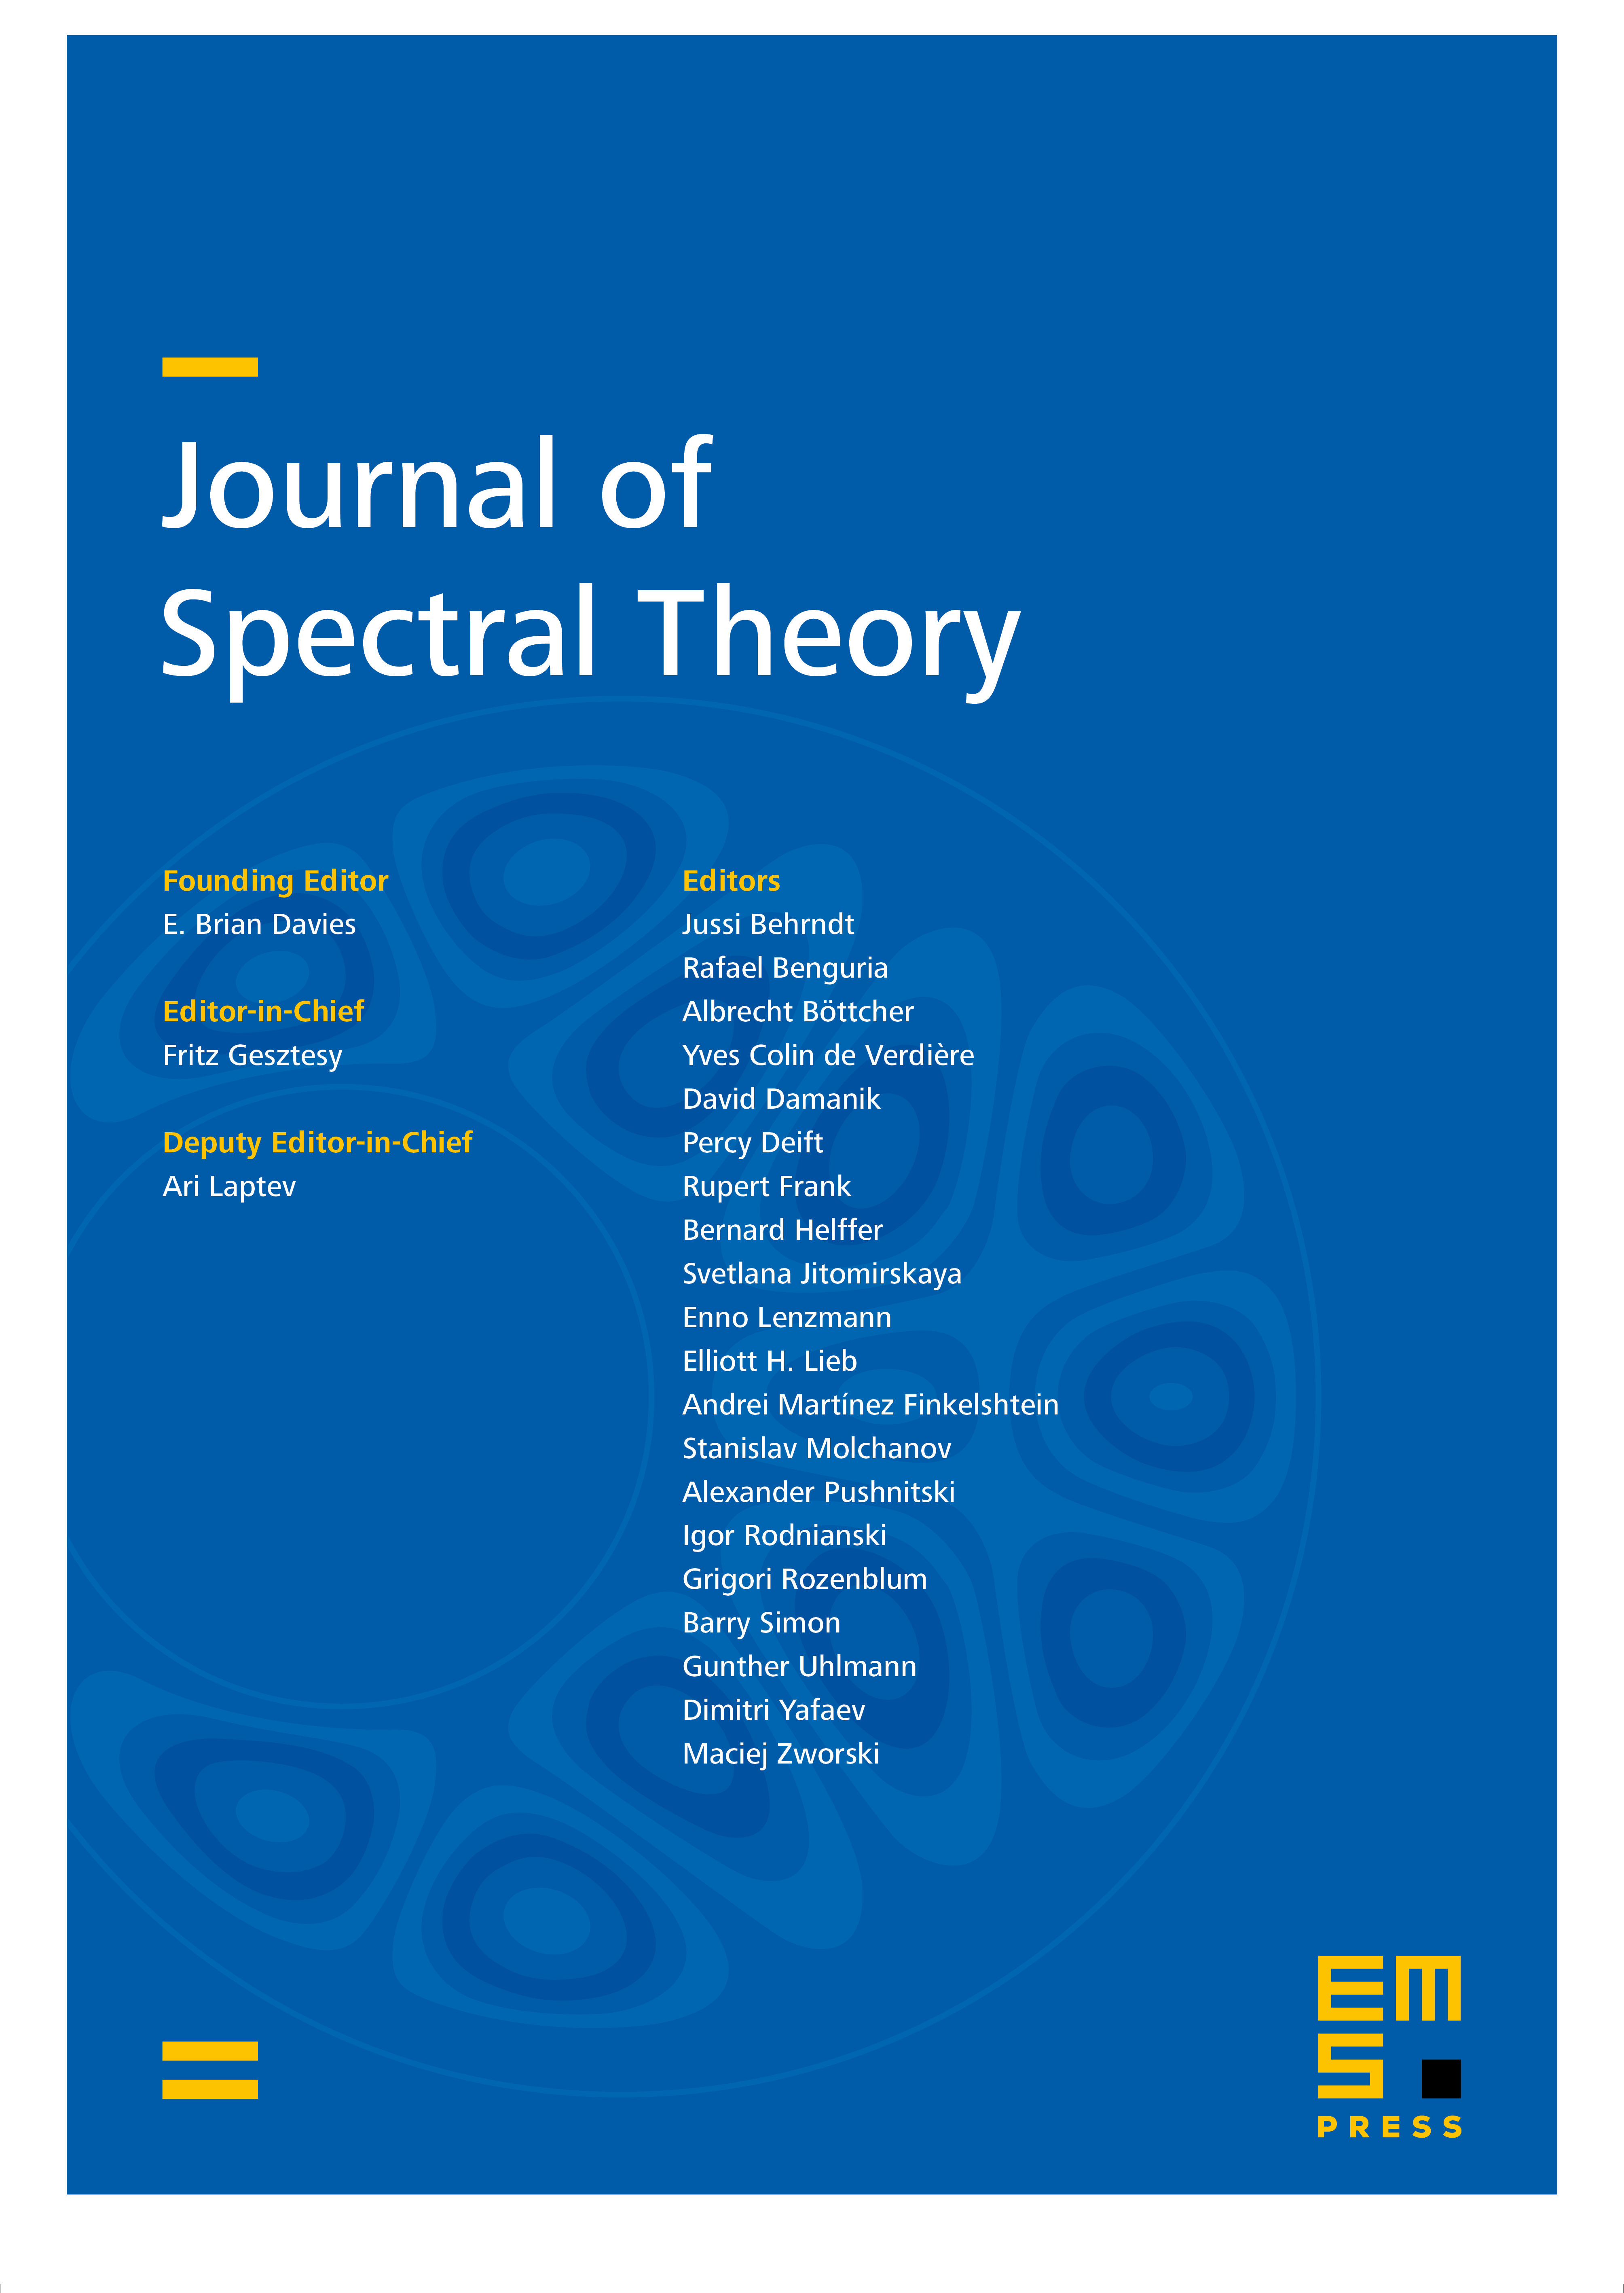 Journal of Spectral Theory cover